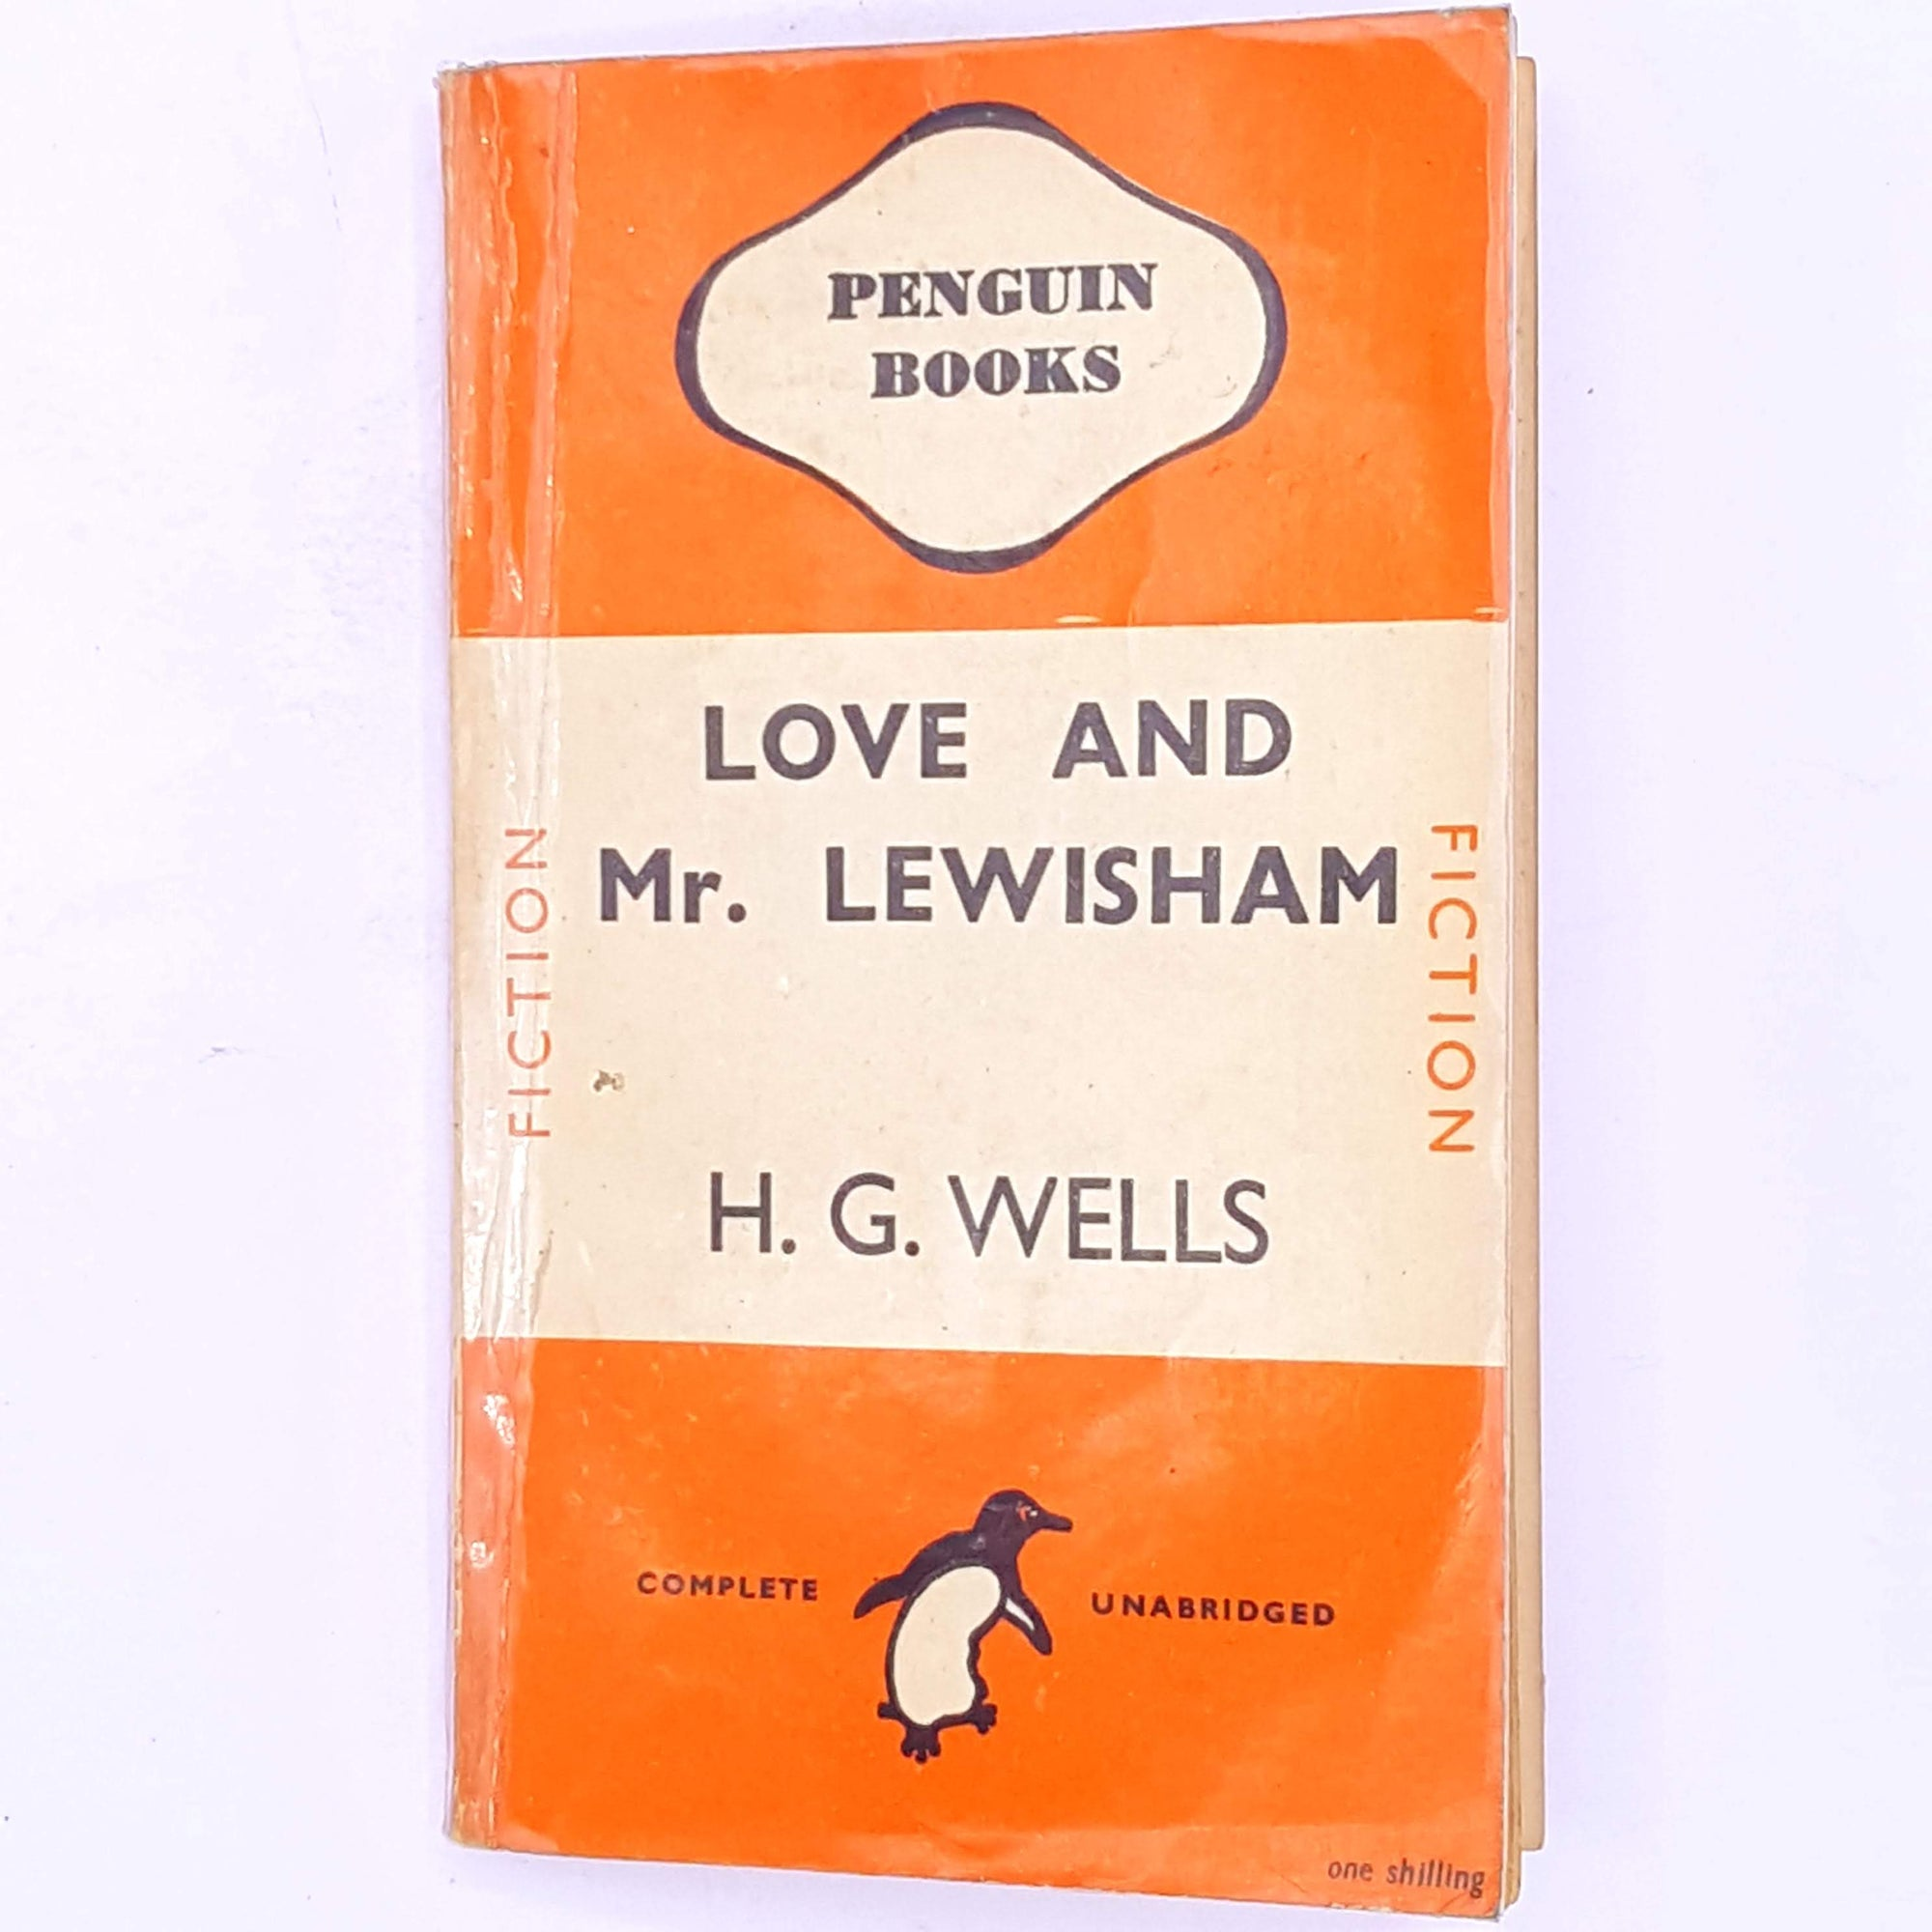 old-horror-books-vintage-classic-thriller-patterned-science-fictions-H.G.-Wells-decorative-thrift-love-and-mr-lewisham-antique-country-house-library-penguin-